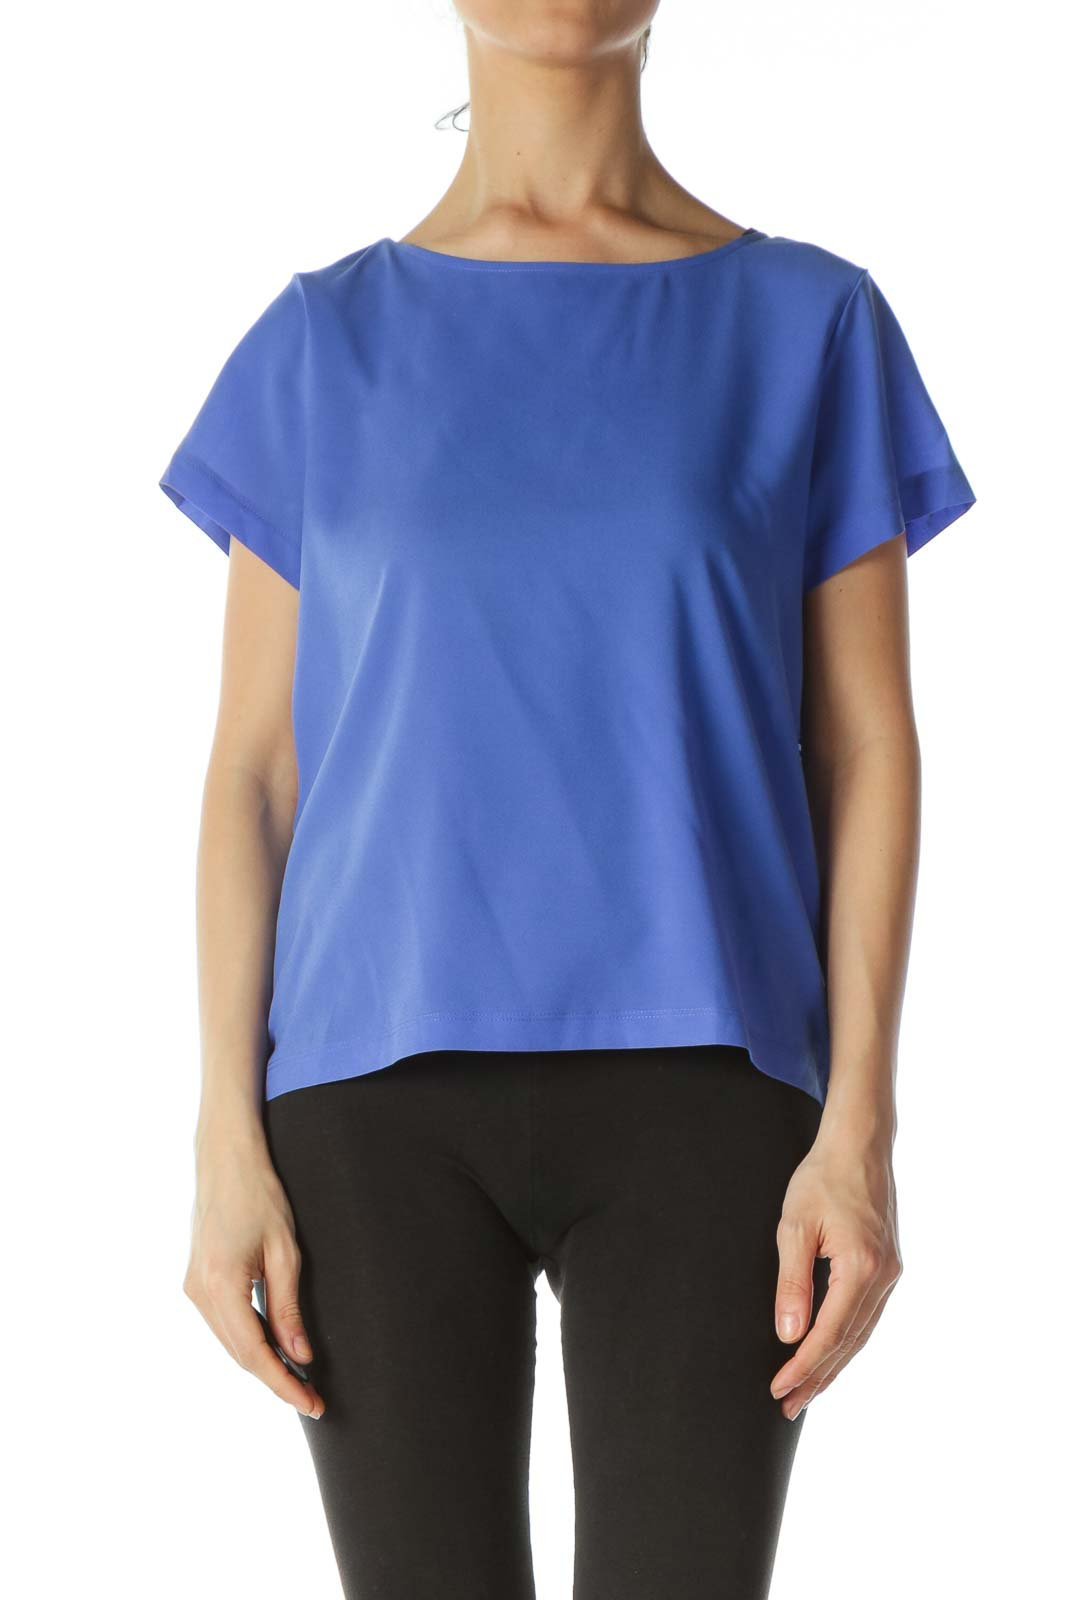 Blue Pleated--Trim-Accents Mixed-Media T-Shirt